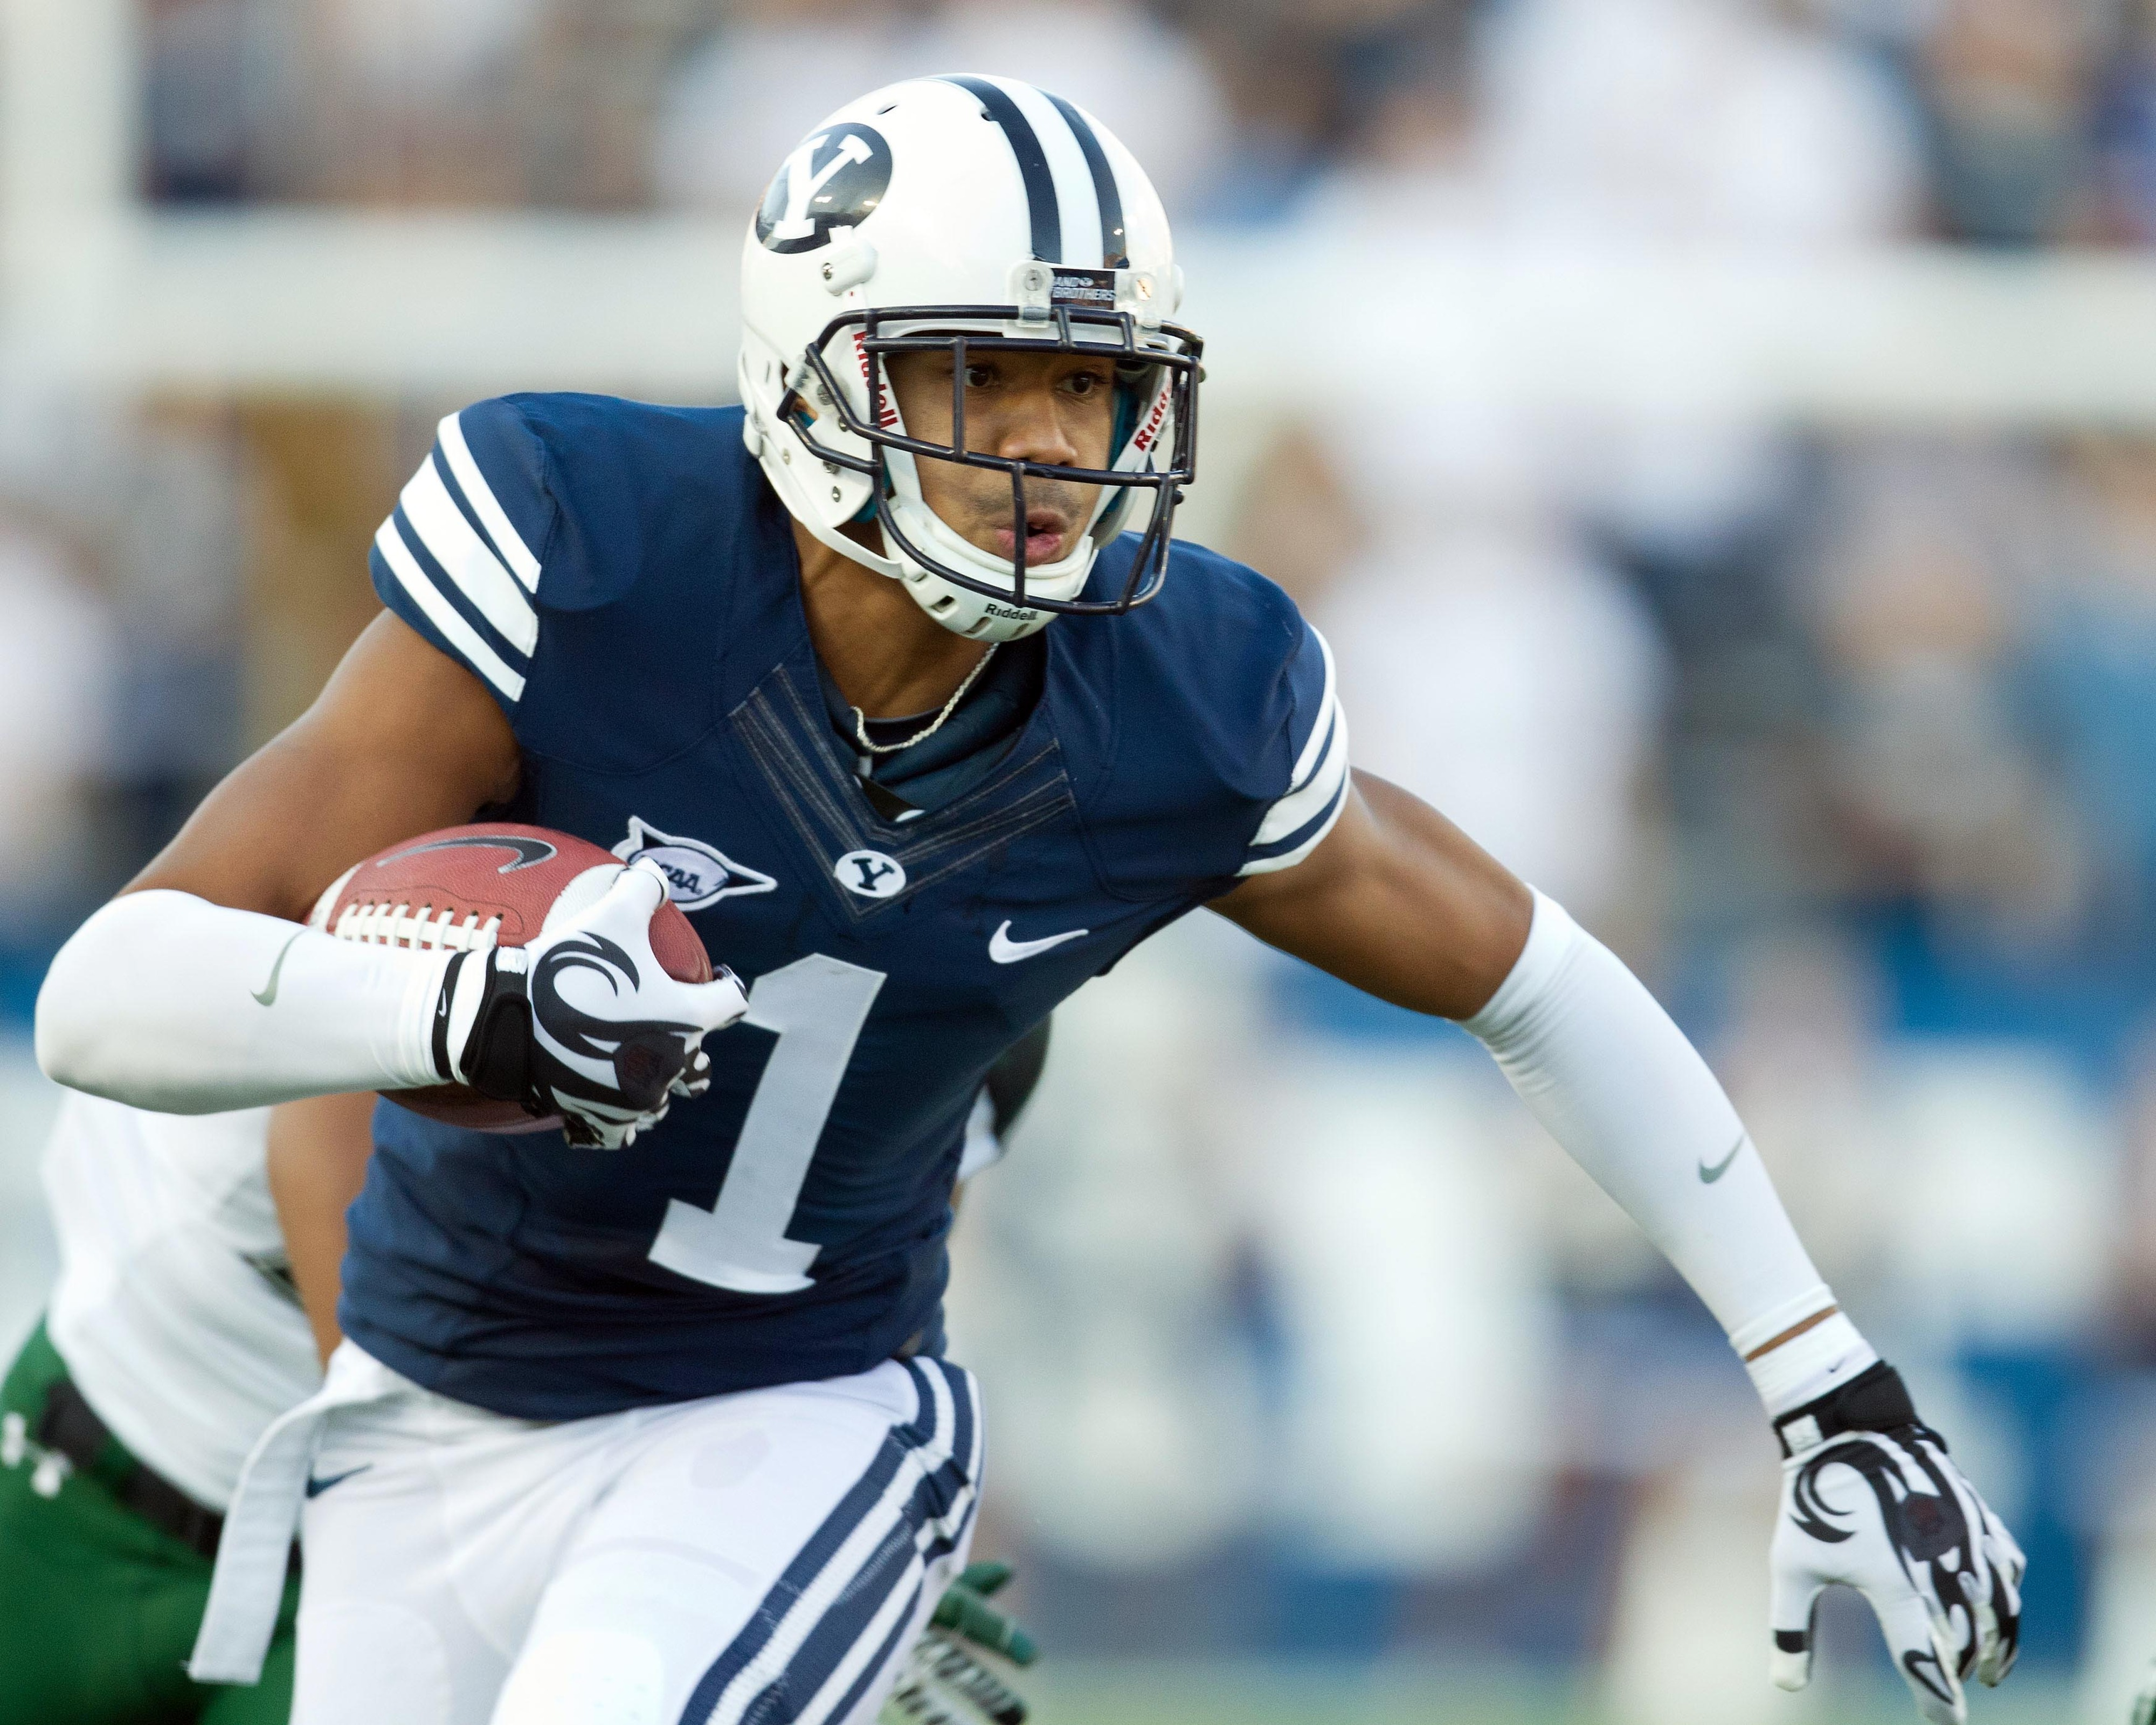 September 28, 2012; Provo, UT, USA; Brigham Young Cougars wide receiver Ross Apo (1) runs after a catch during the first quarter against the Hawaii Warriors at Lavell Edwards Stadium. Mandatory Credit: Russ Isabella-US PRESSWIRE